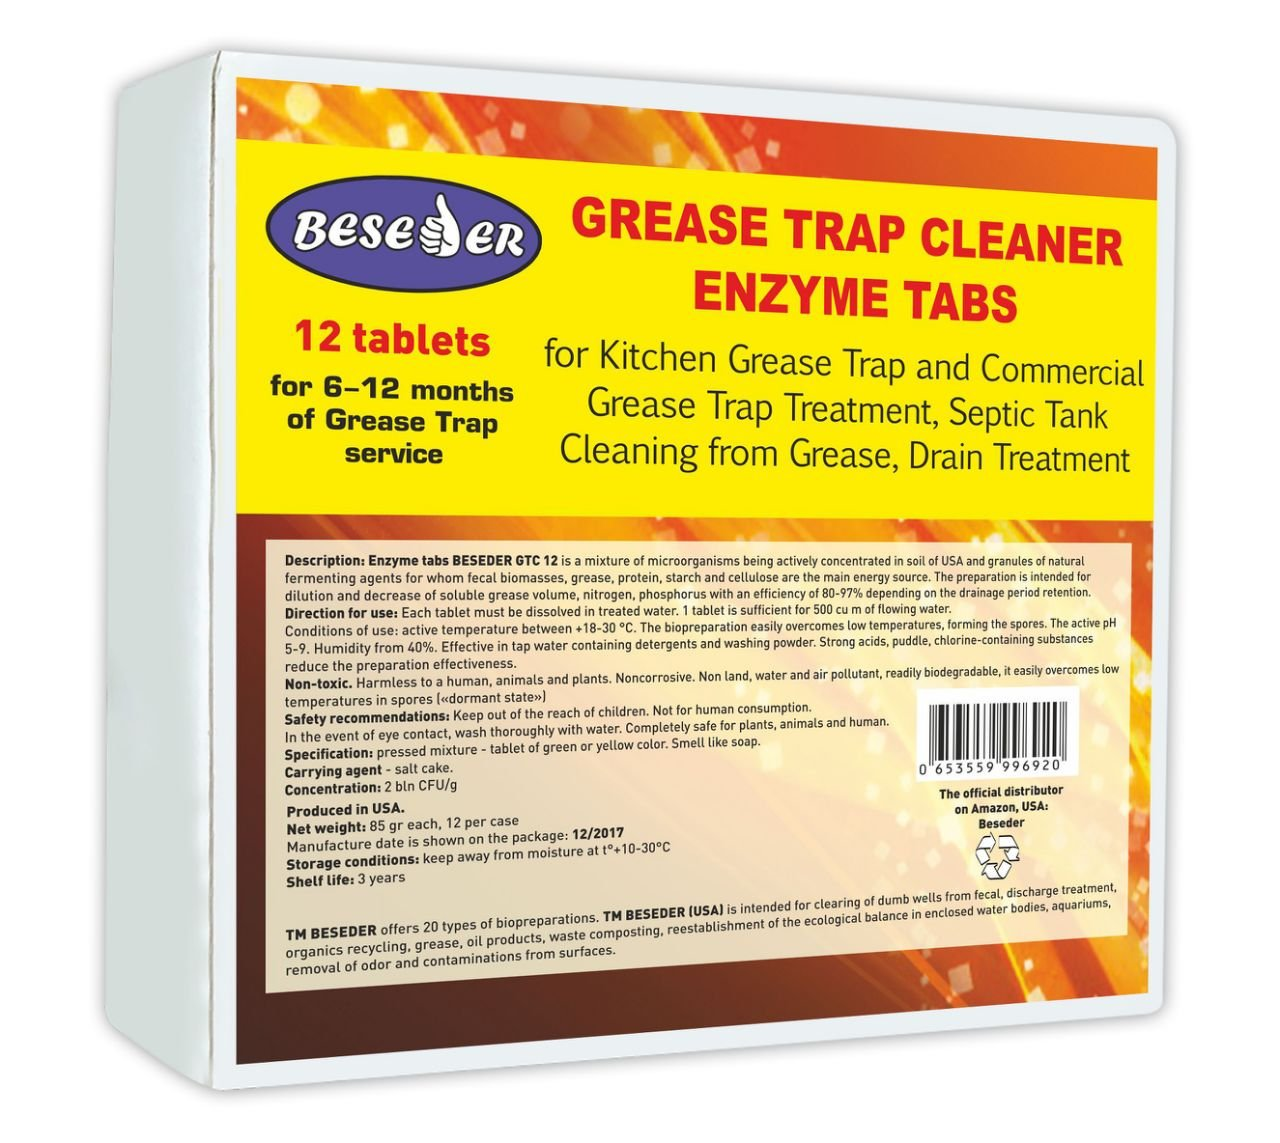 Beseder Grease Trap Cleaner 12 pcs for grease decomposition, septic treatment and grease trap cleaning by Beseder (Image #1)